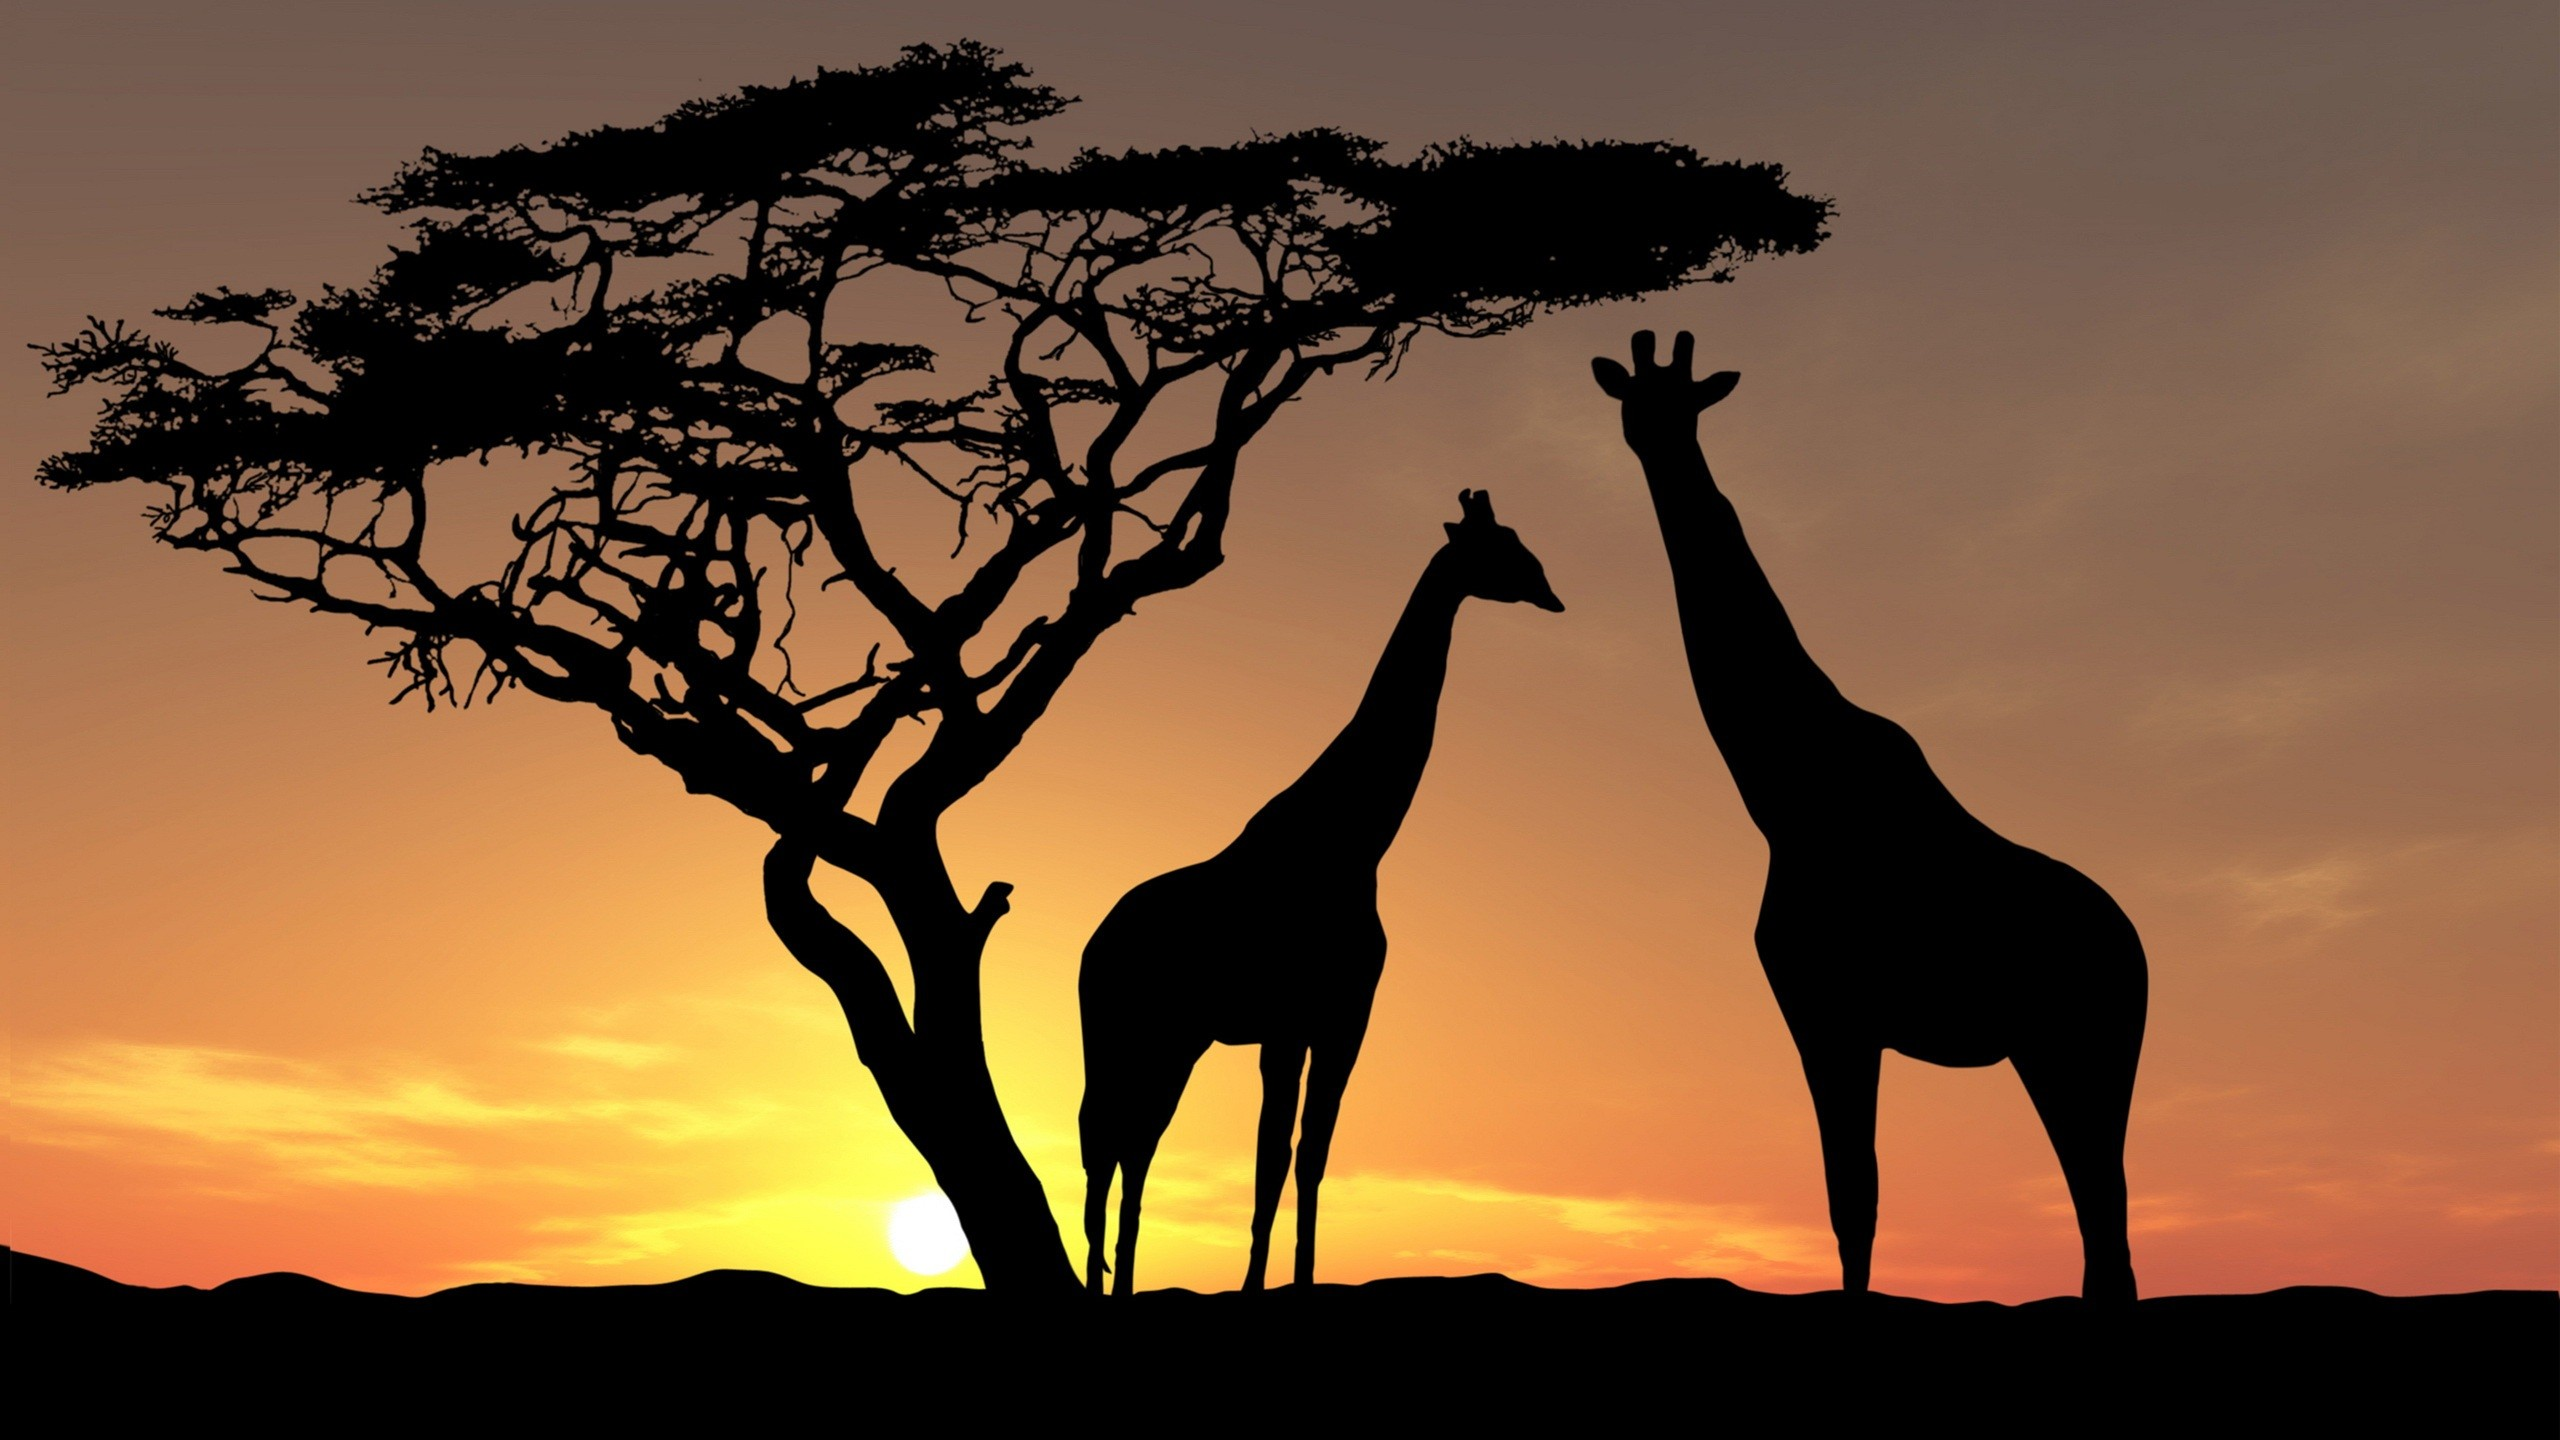 Silhouettes of giraffes and a tree at sunset